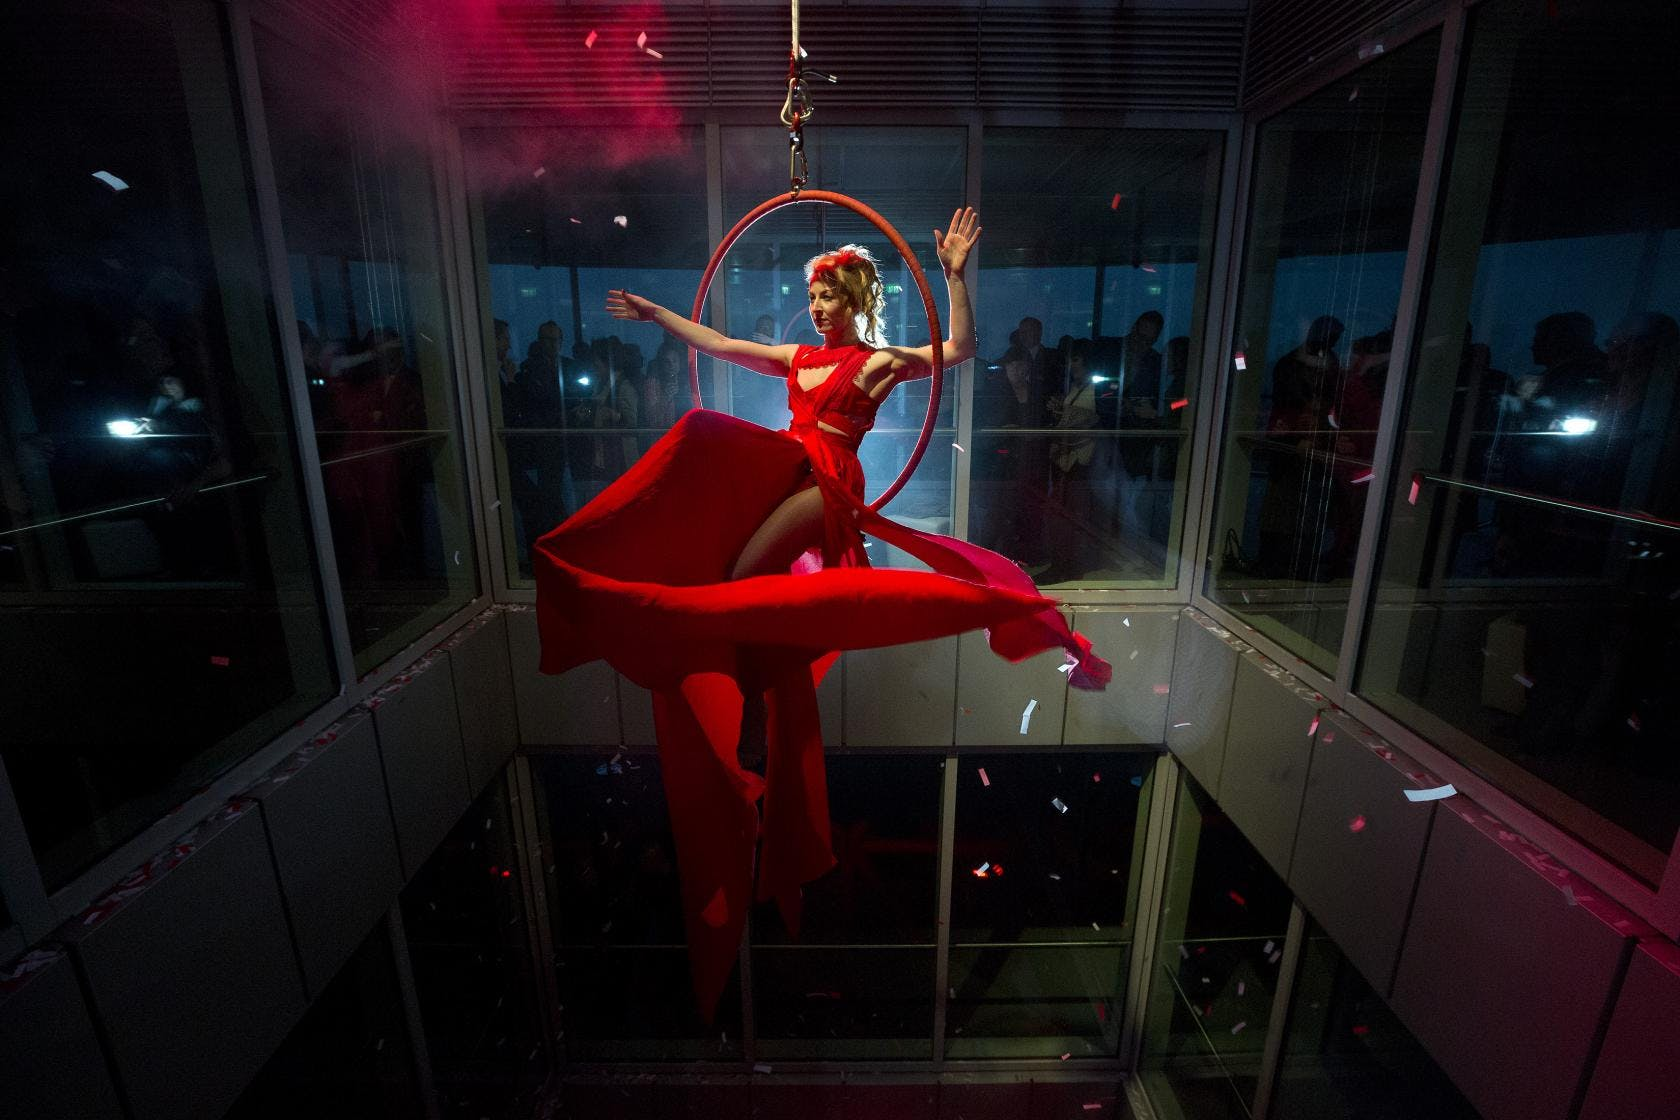 Acrobat entertainment at ArcelorMittal Orbit party